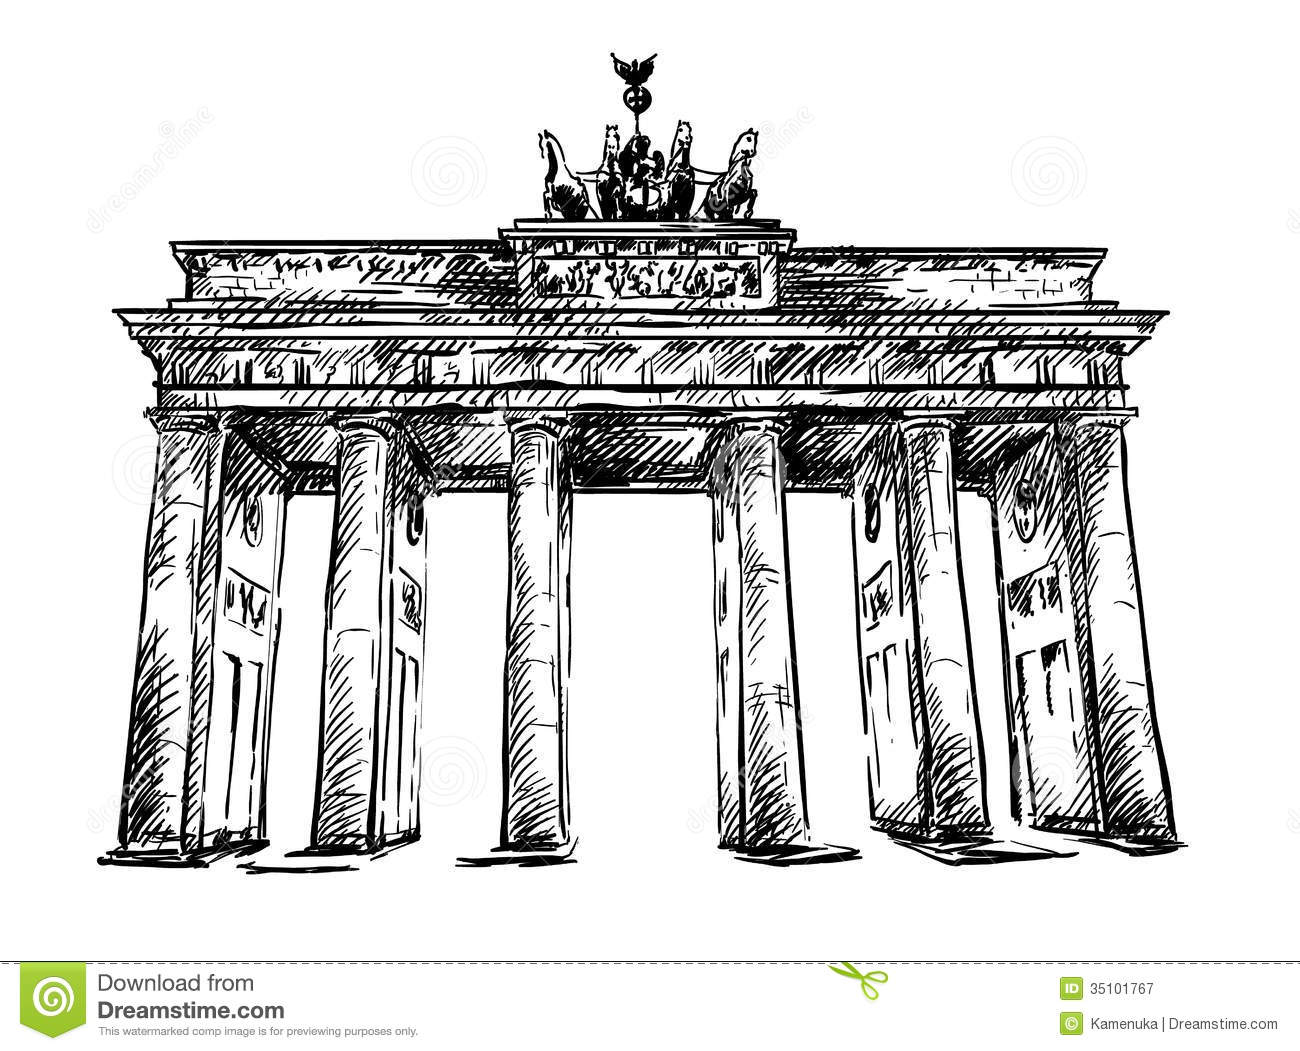 Brandenburg gate vector sketch stock vector image for Porte de brandebourg